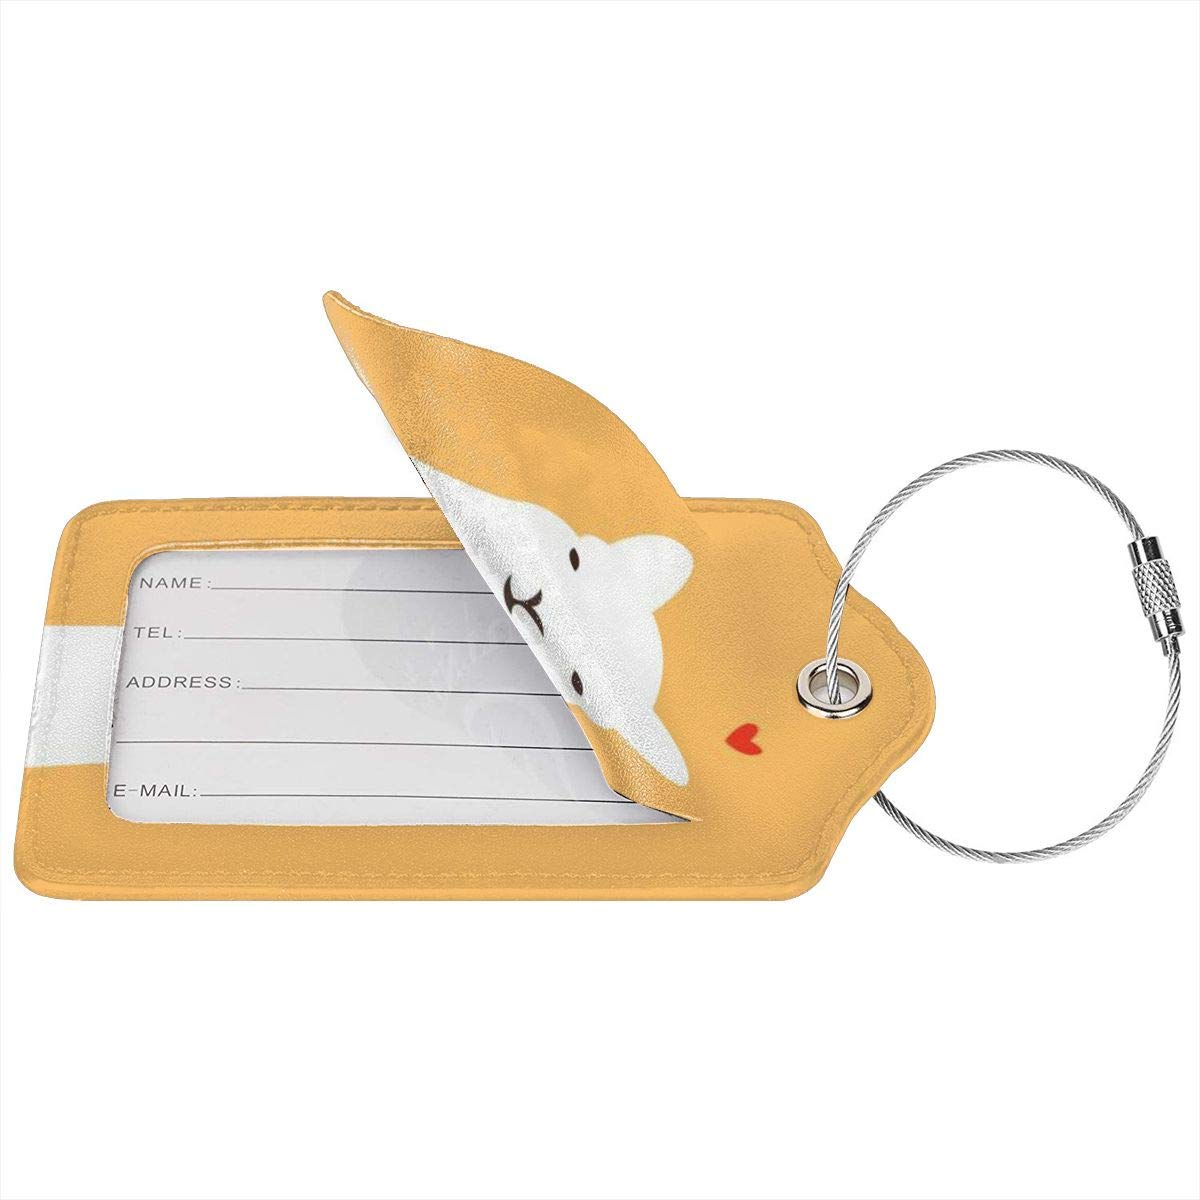 Llama Heart 2.7 x 4.6 Blank Tag Key Tags for Backpacks Travel Bags Gift Leather Luggage Tags Full Privacy Cover and Stainless Steel Loop 1 2 4 Pcs Set